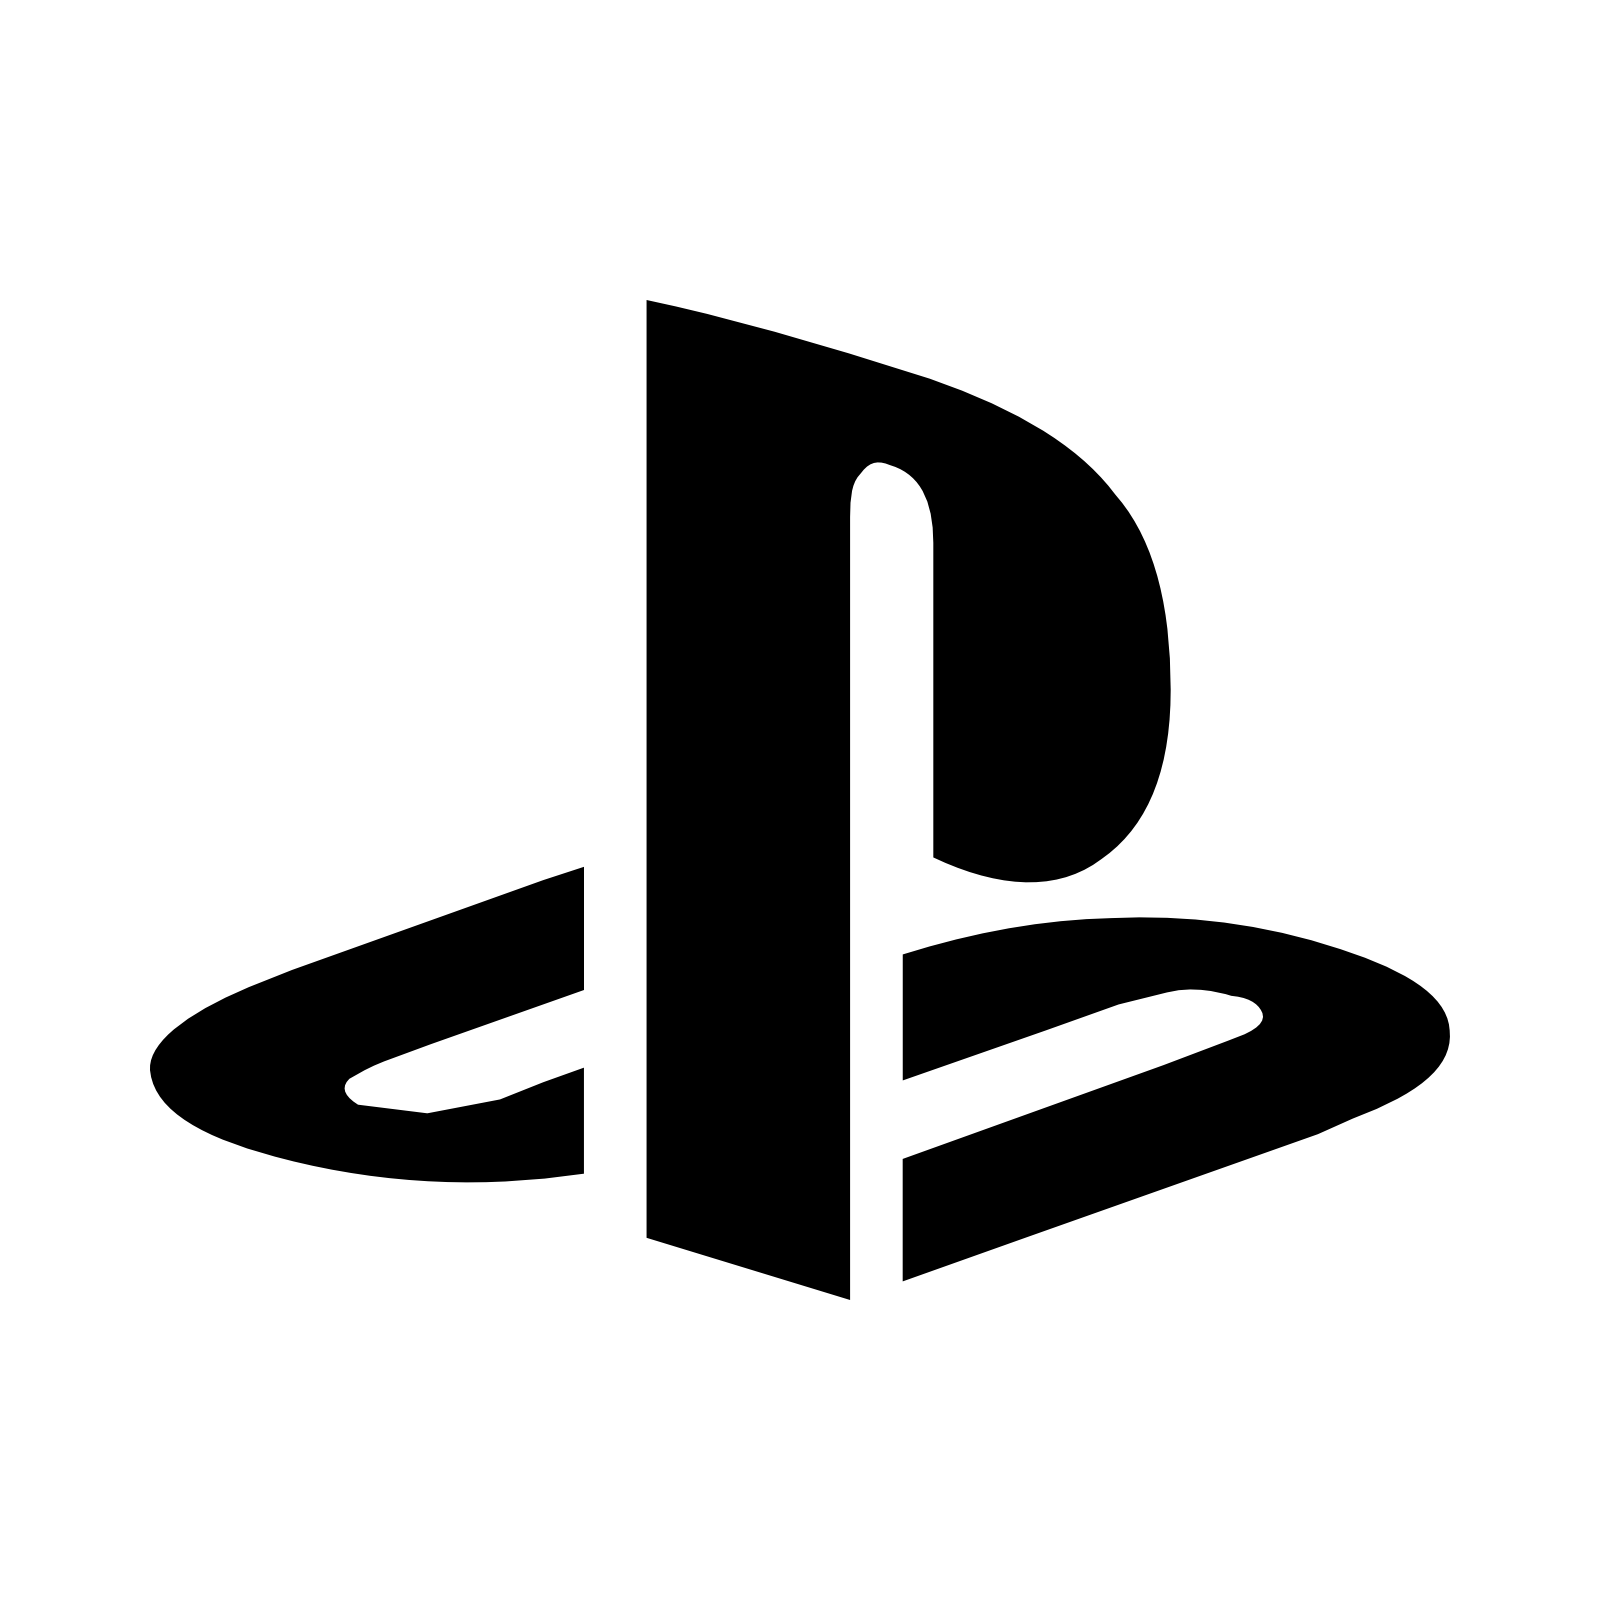 Logos transparent ps4. Free ps icon png